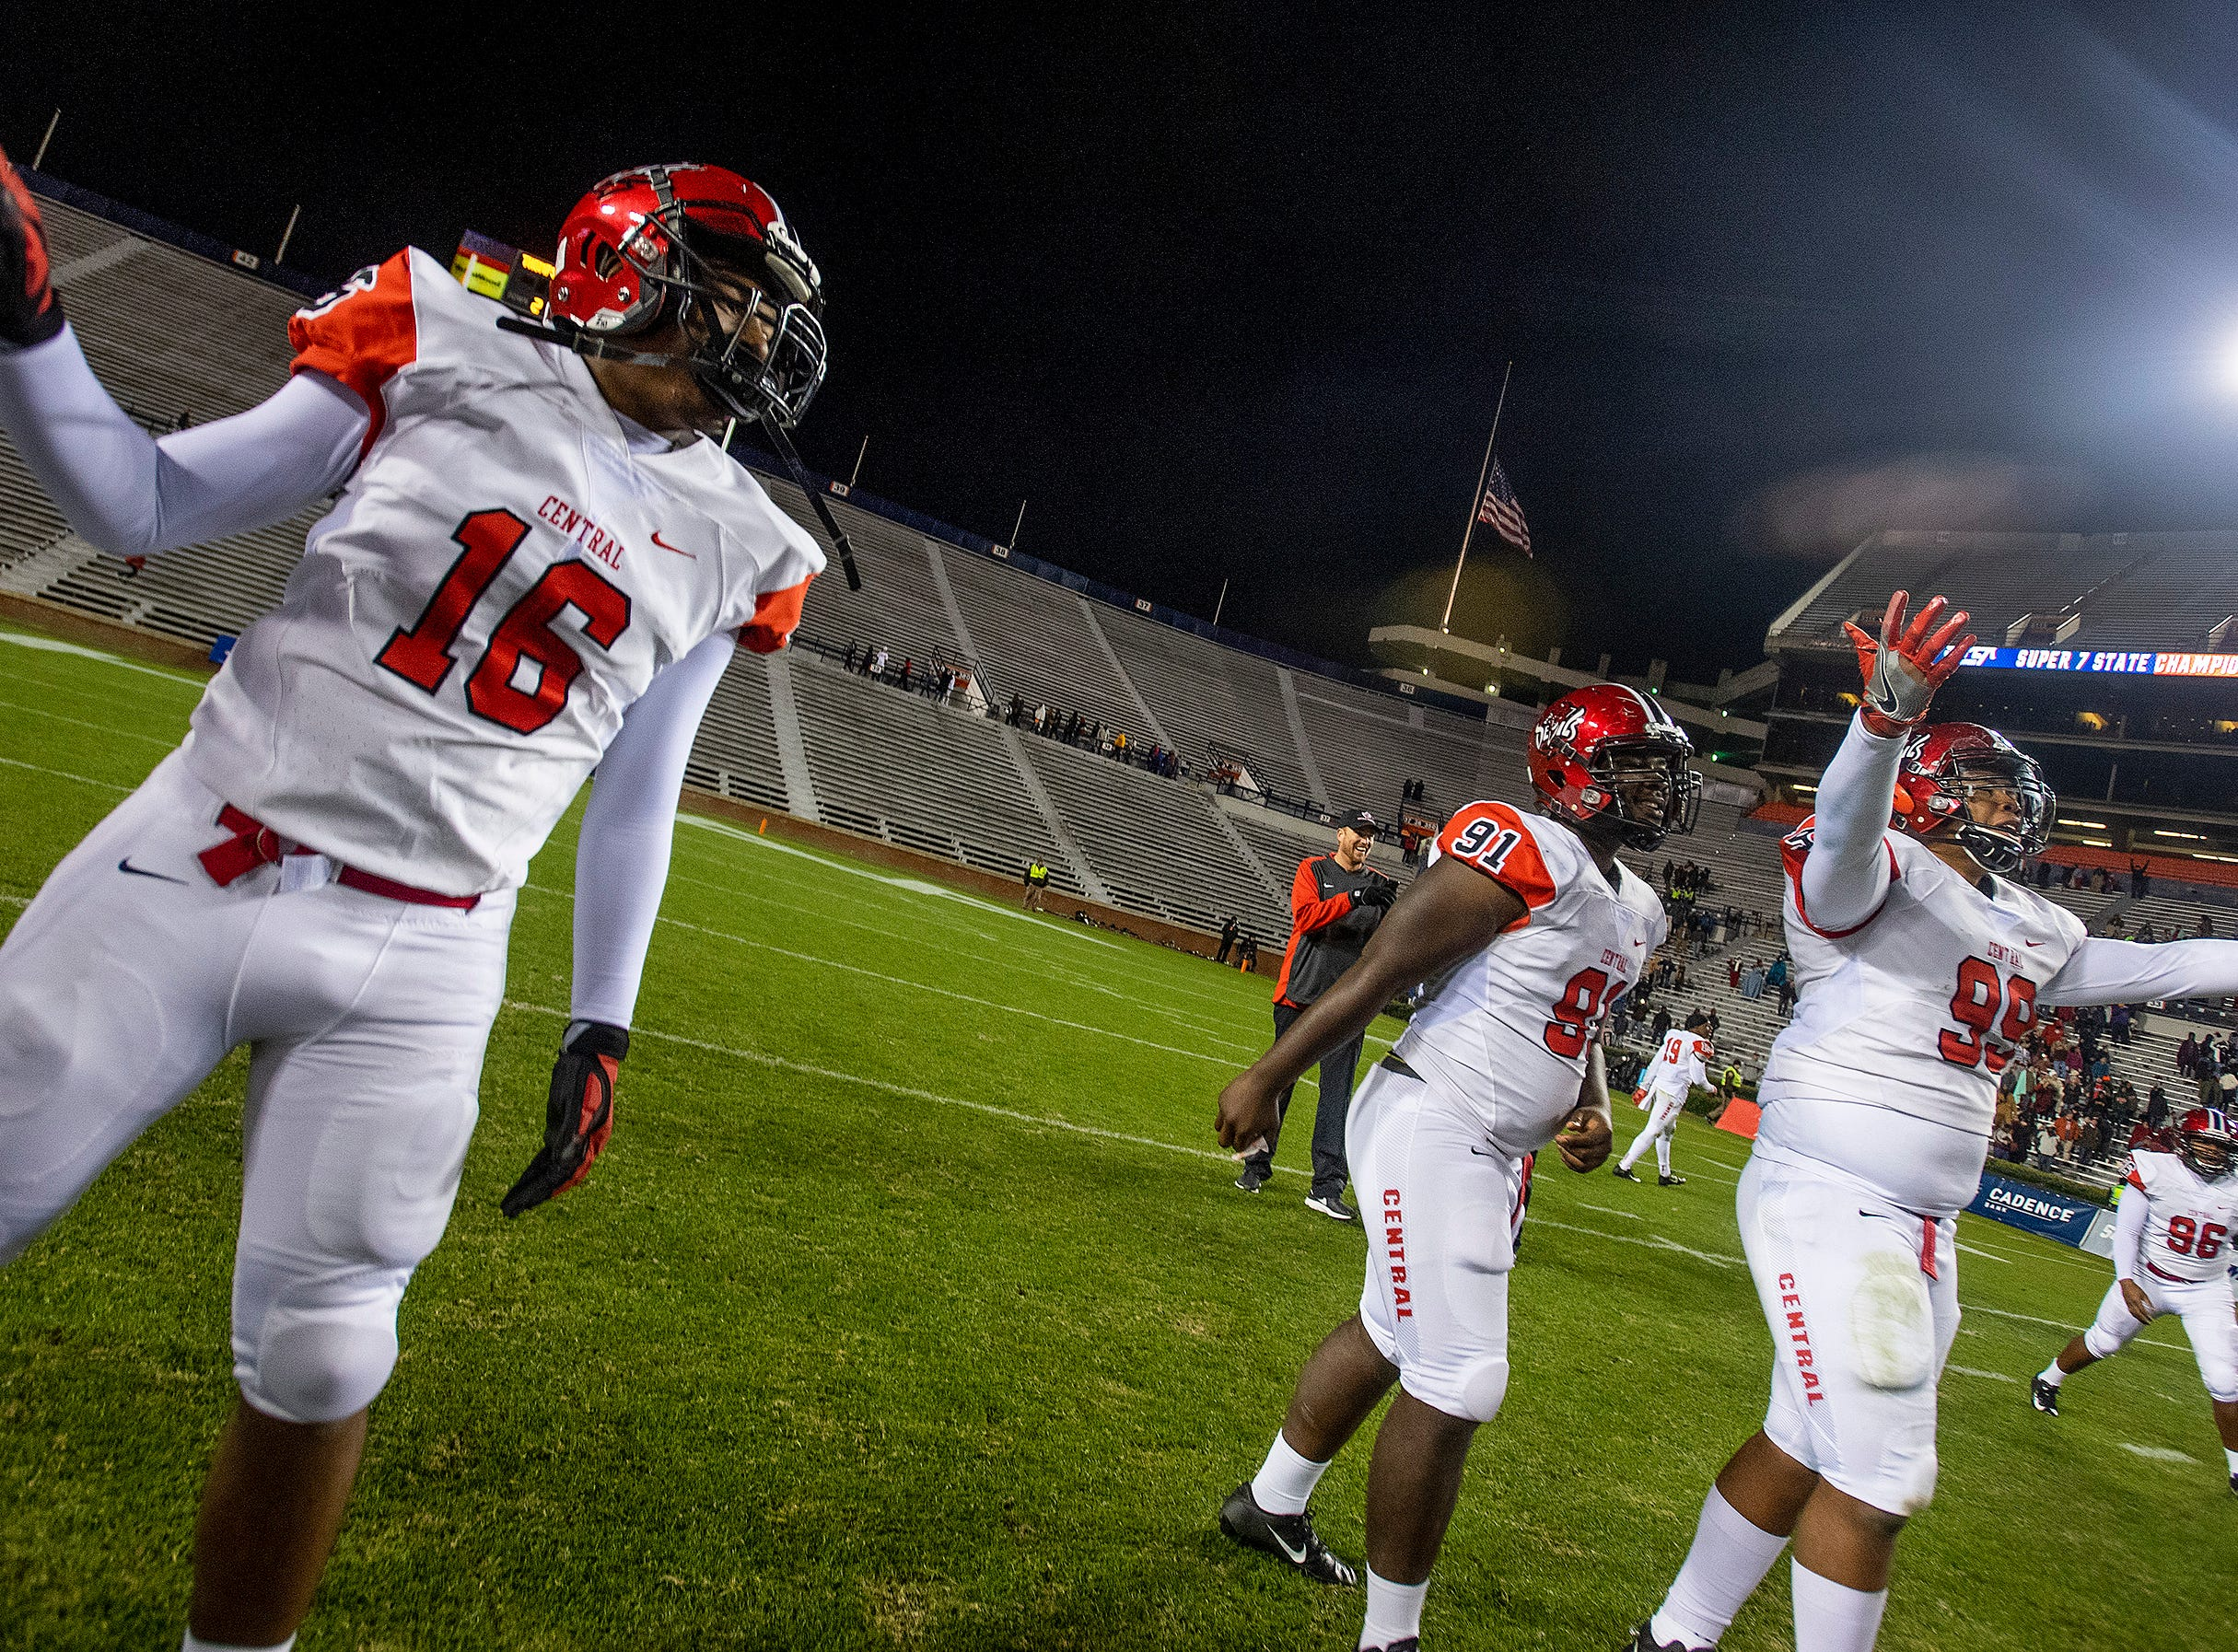 Central-Phenix City players celebrate defeating Thompson in the AHSAA Class 7A State Championship Football Game at Jordan Hare Stadium in Auburn, Ala., on Wednesday evening December 5, 2018.